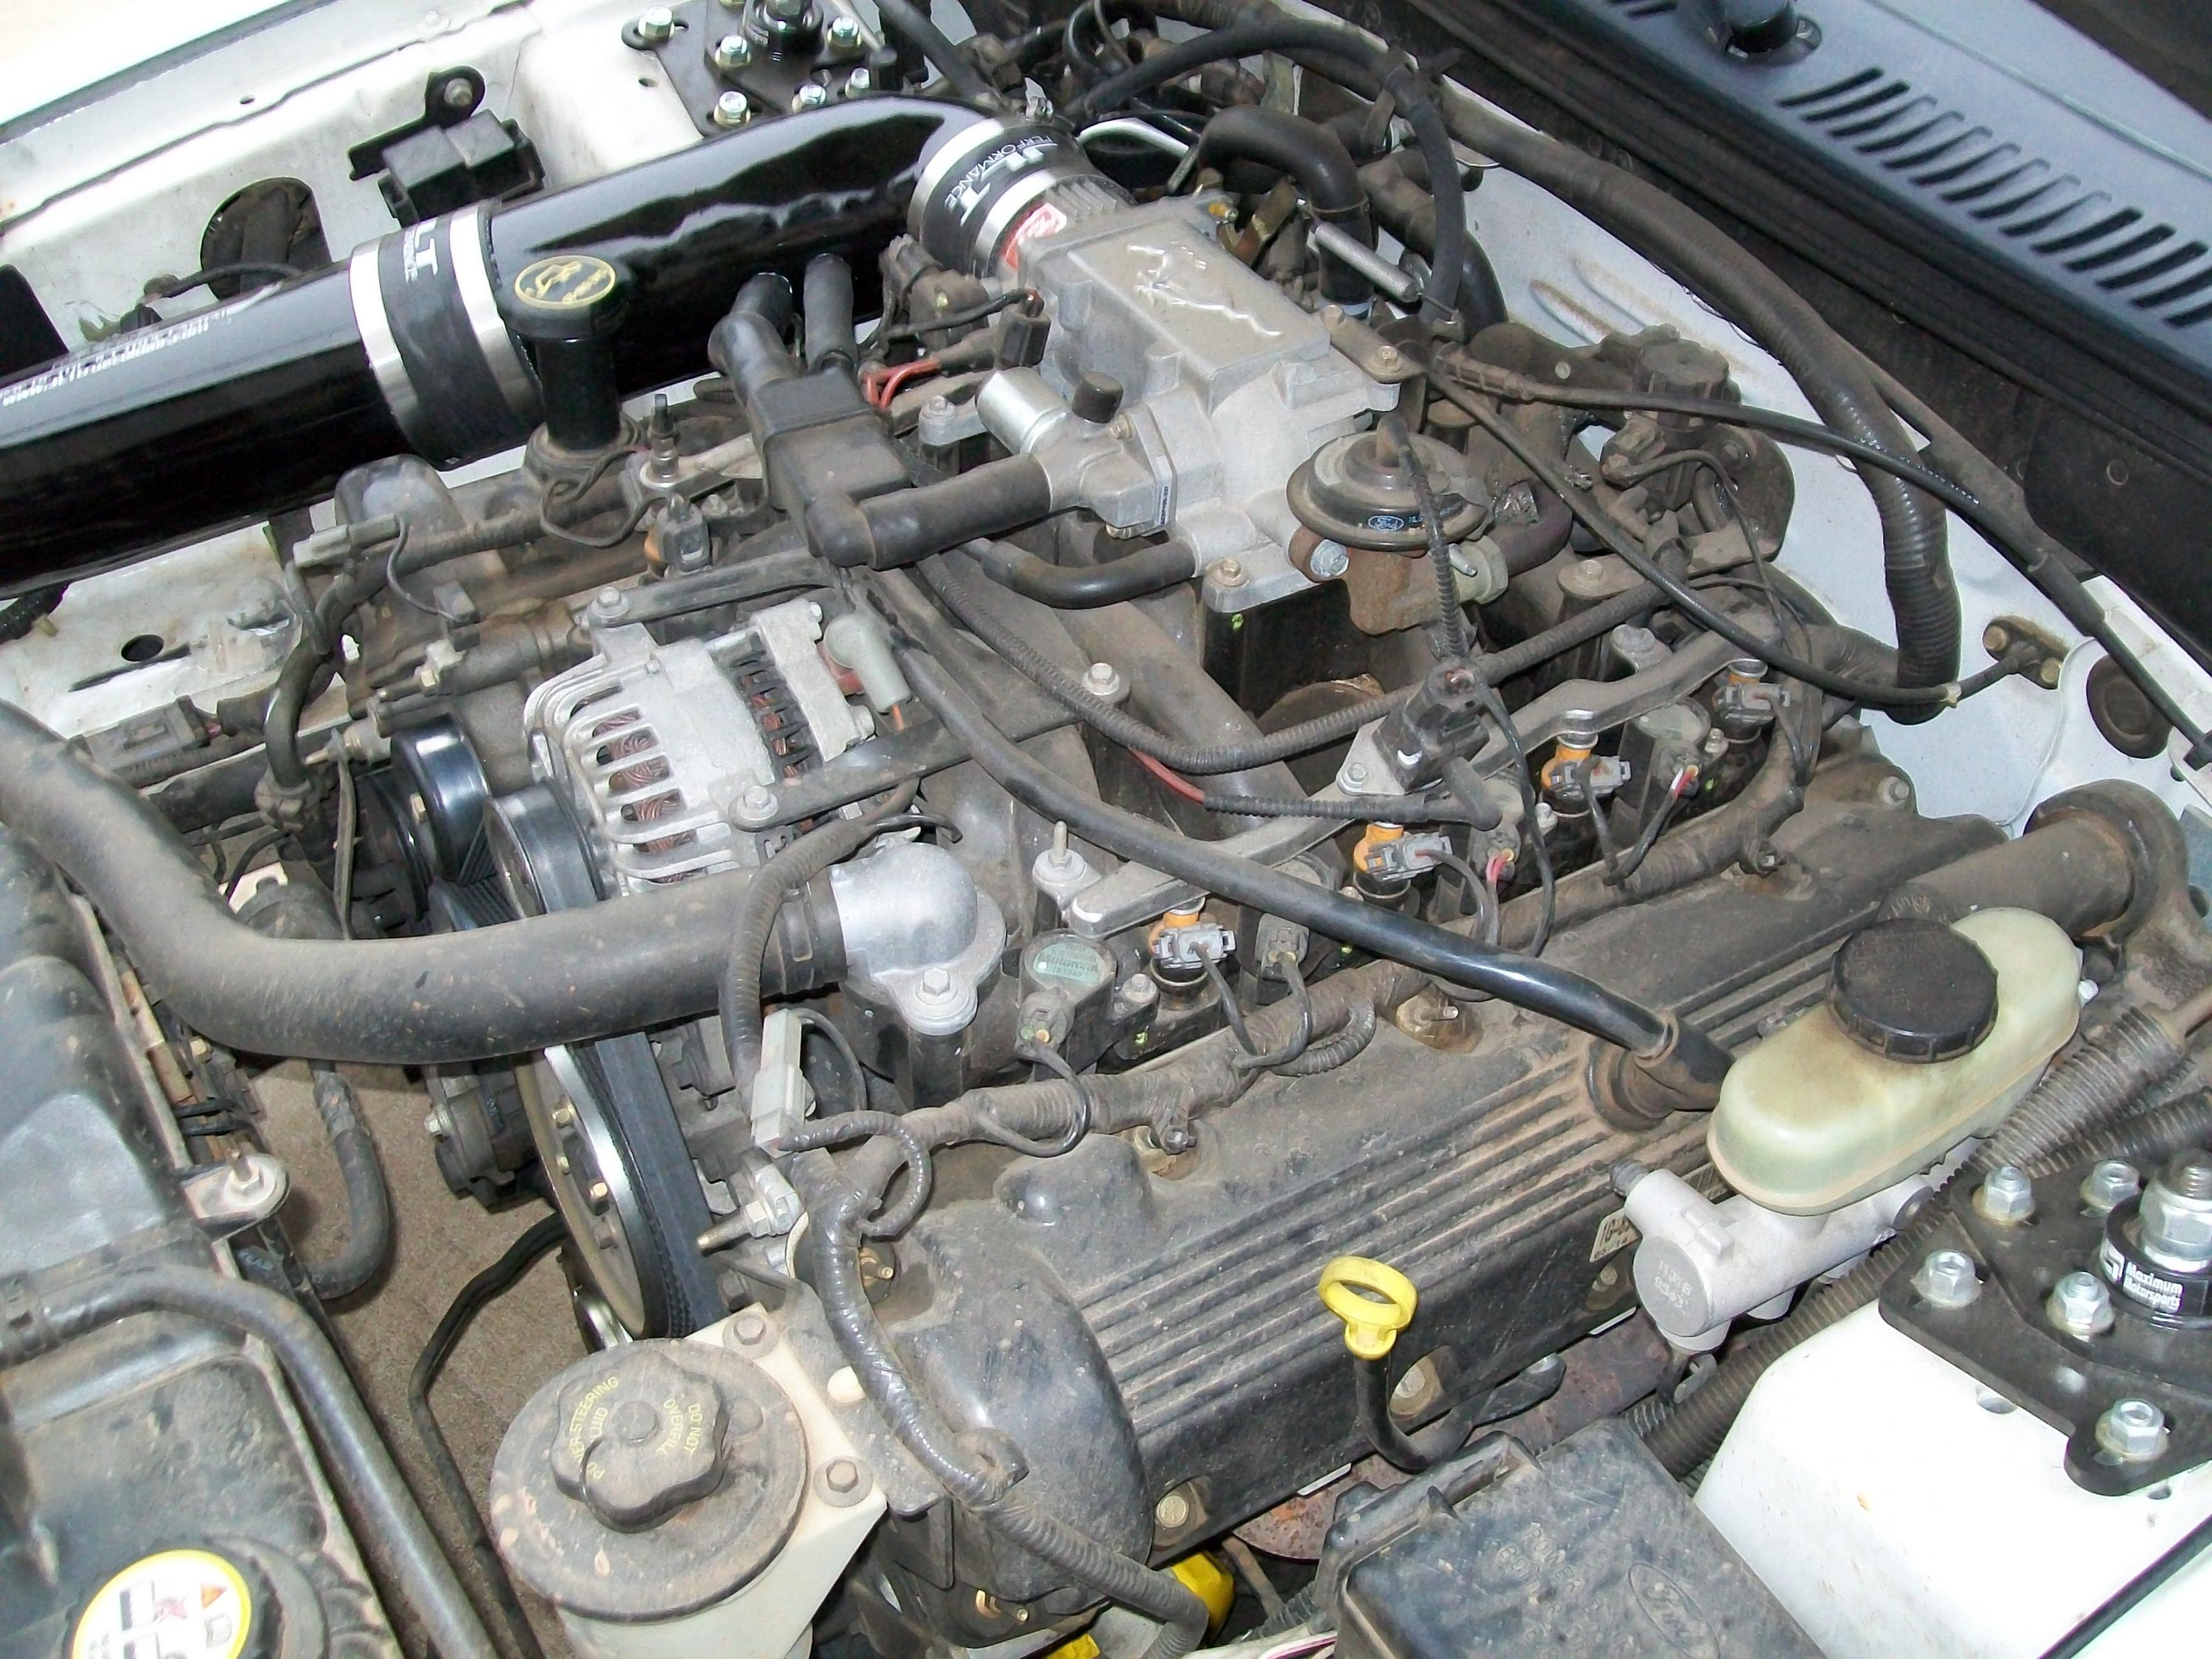 Friday Project With Pics And Video 2001 Mustang Gt Ford Mustang